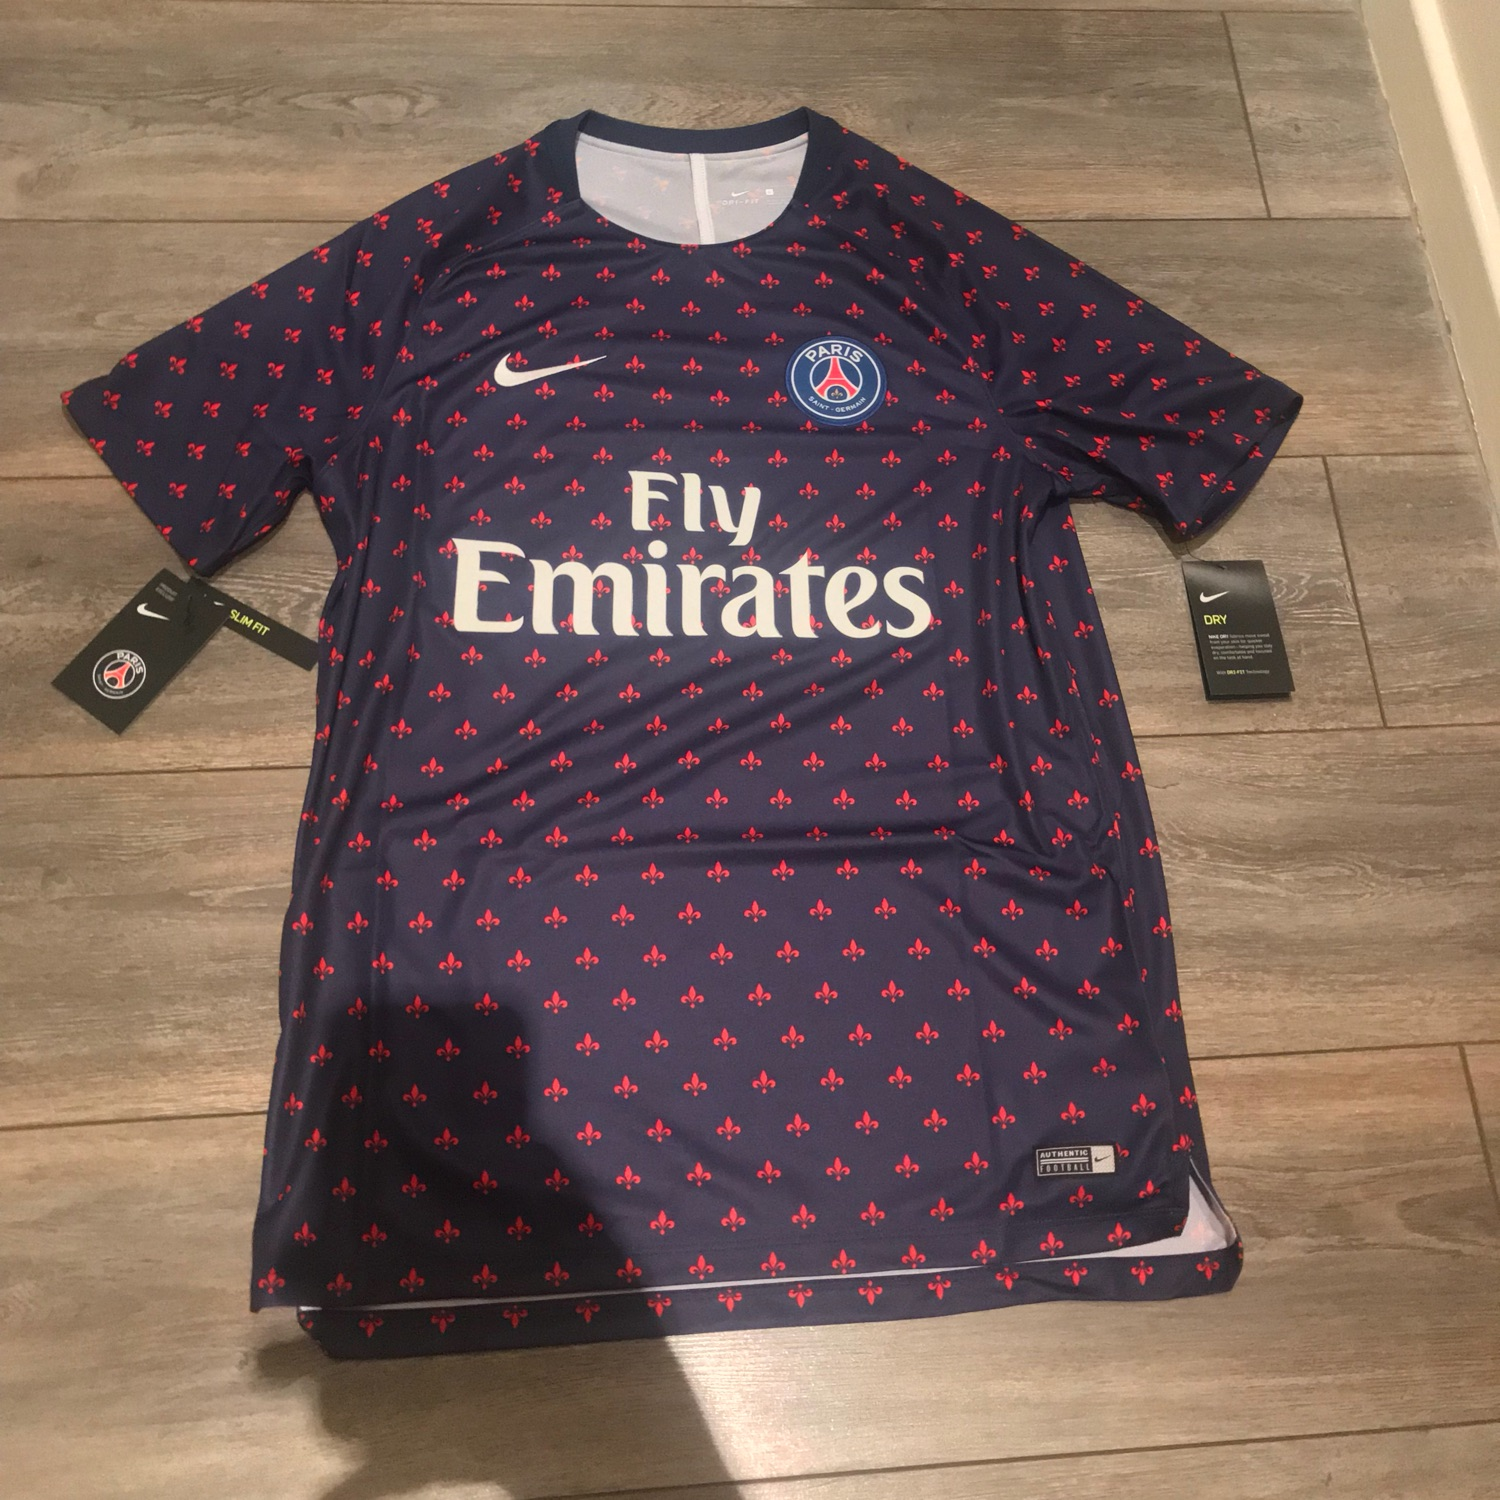 low priced 5c0ea 2c41d Brand New Nike Psg Pre Match Top